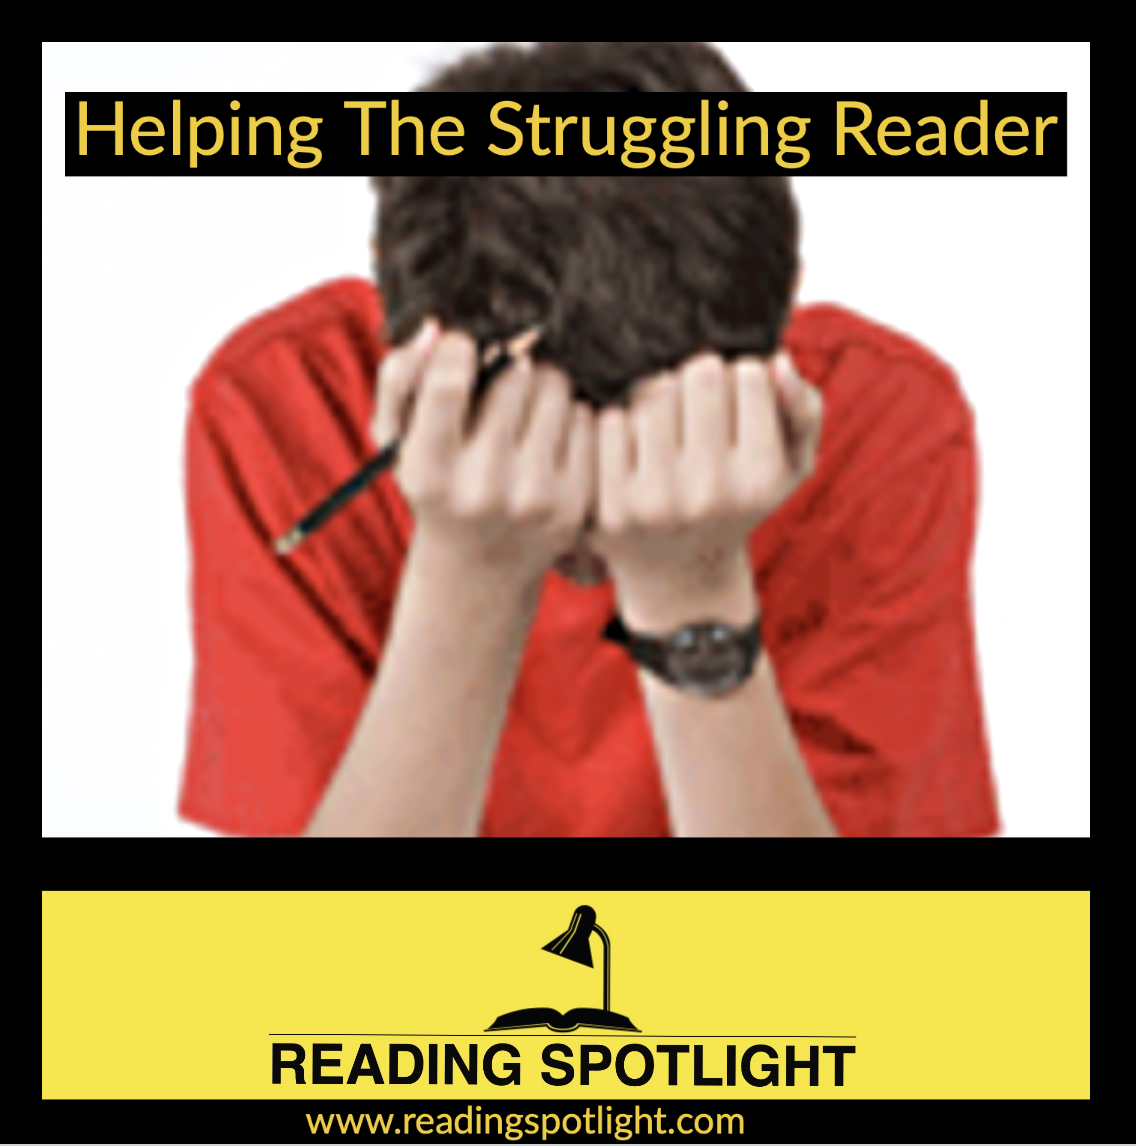 How to Help the Struggling Reader